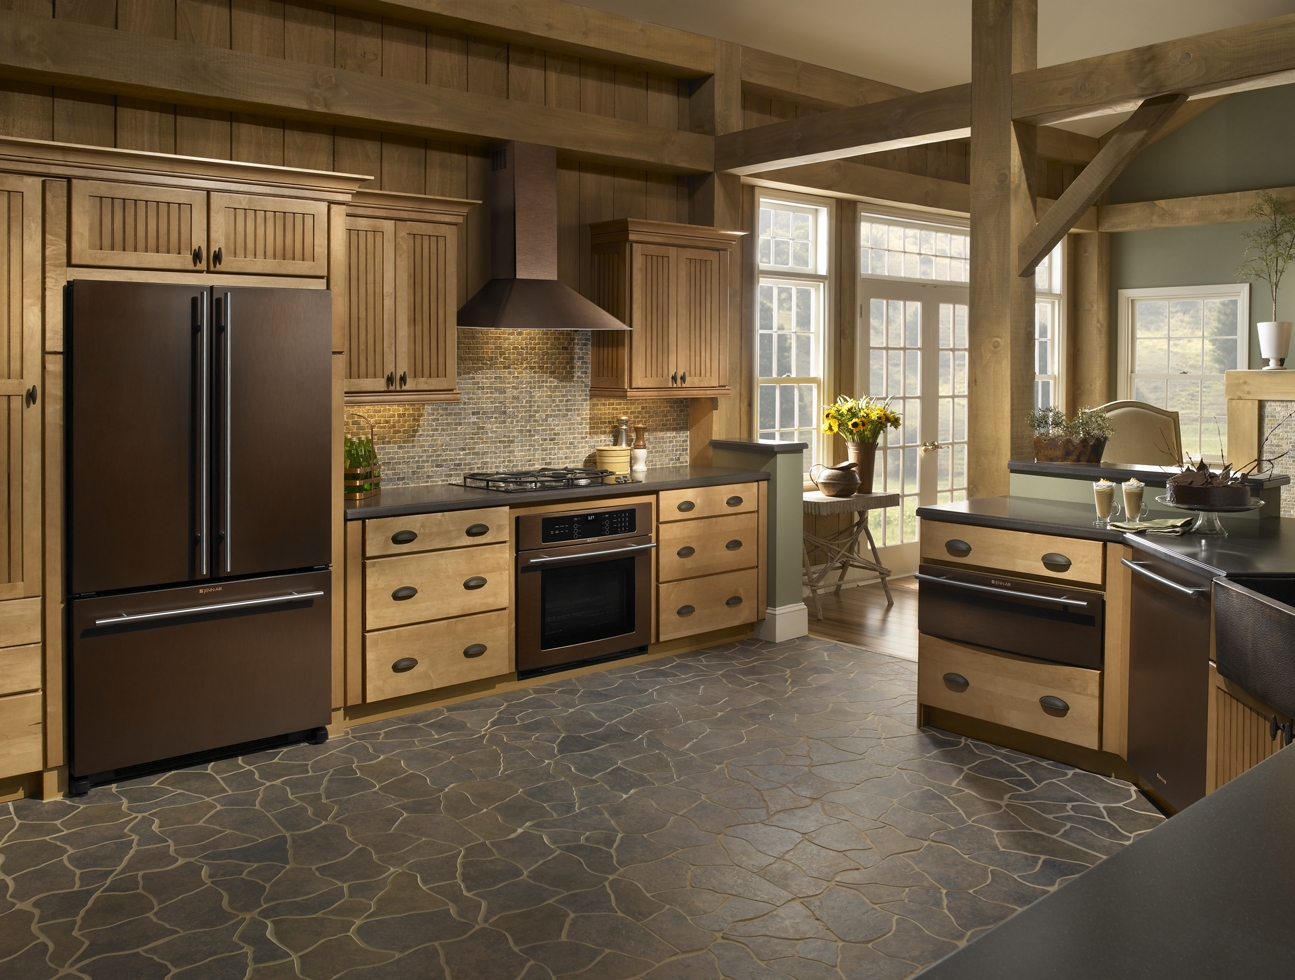 A large kitchen with bronze appliances